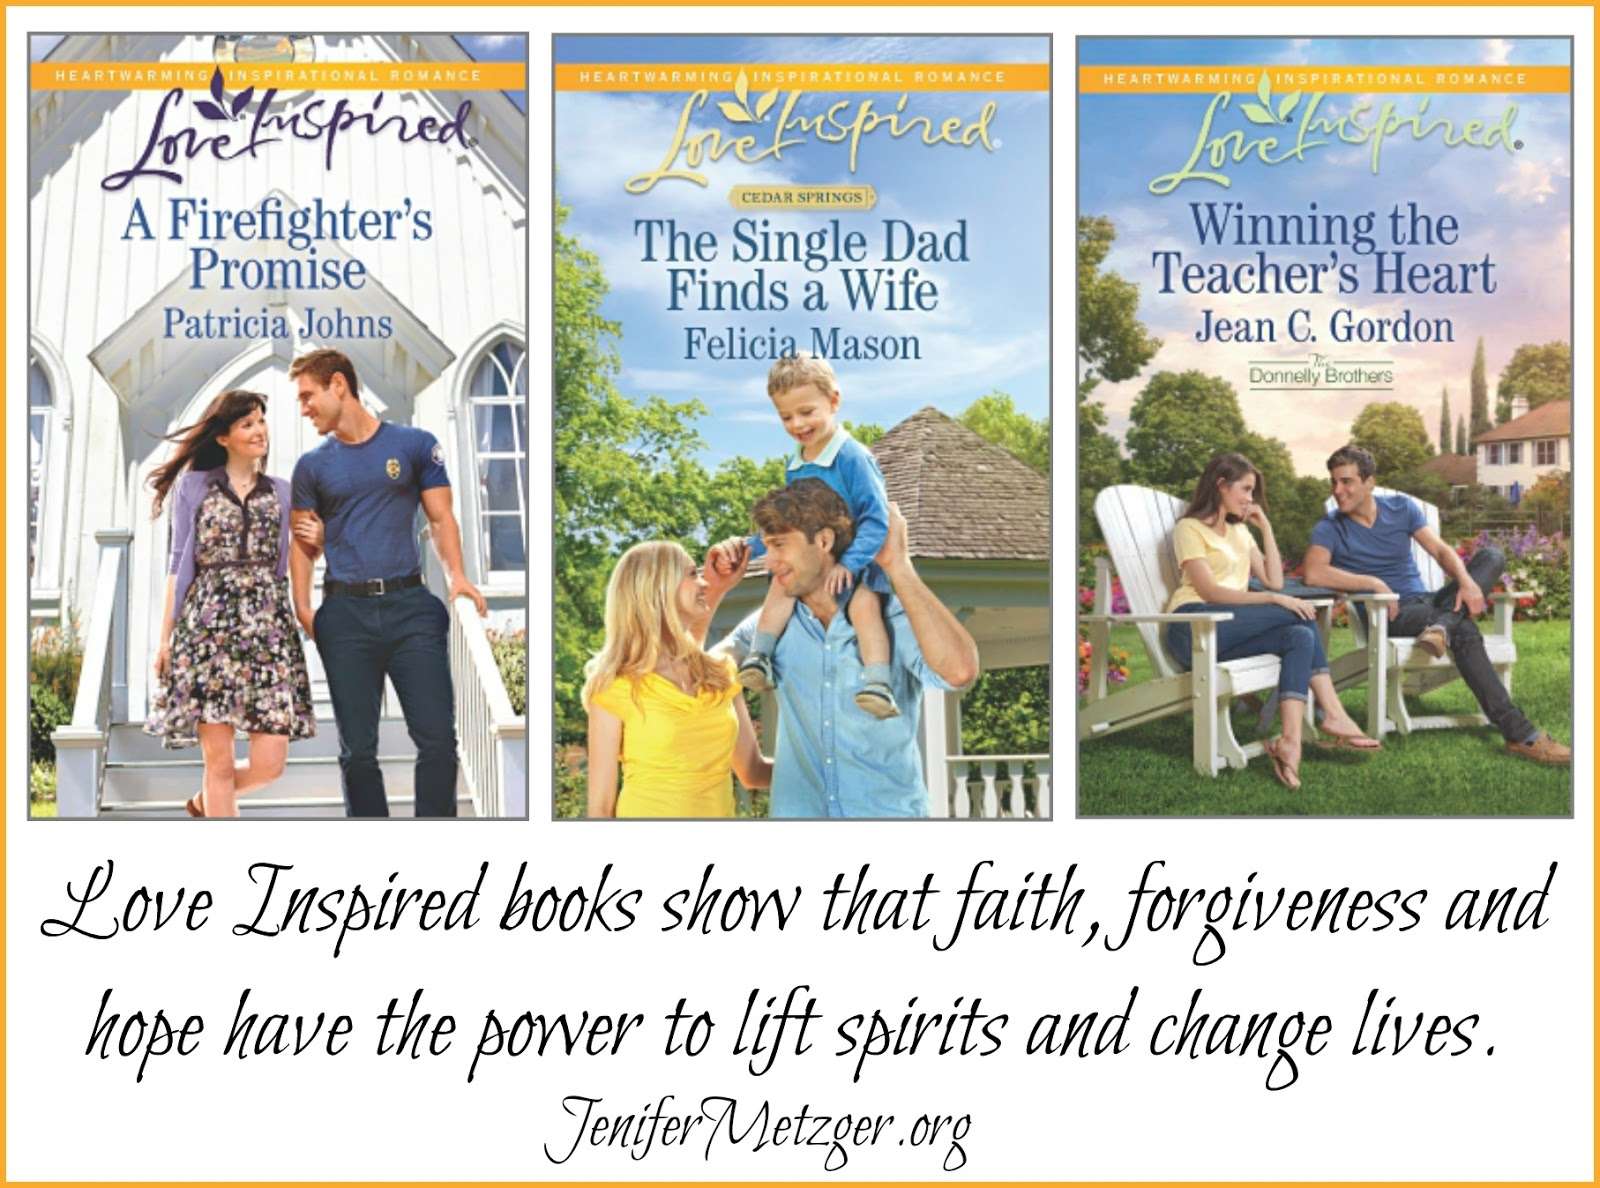 Love Inspired books show that faith, forgiveness and hope have the power to lift spirits and change lives. #LoveInspired #fictionbooks #giveaway